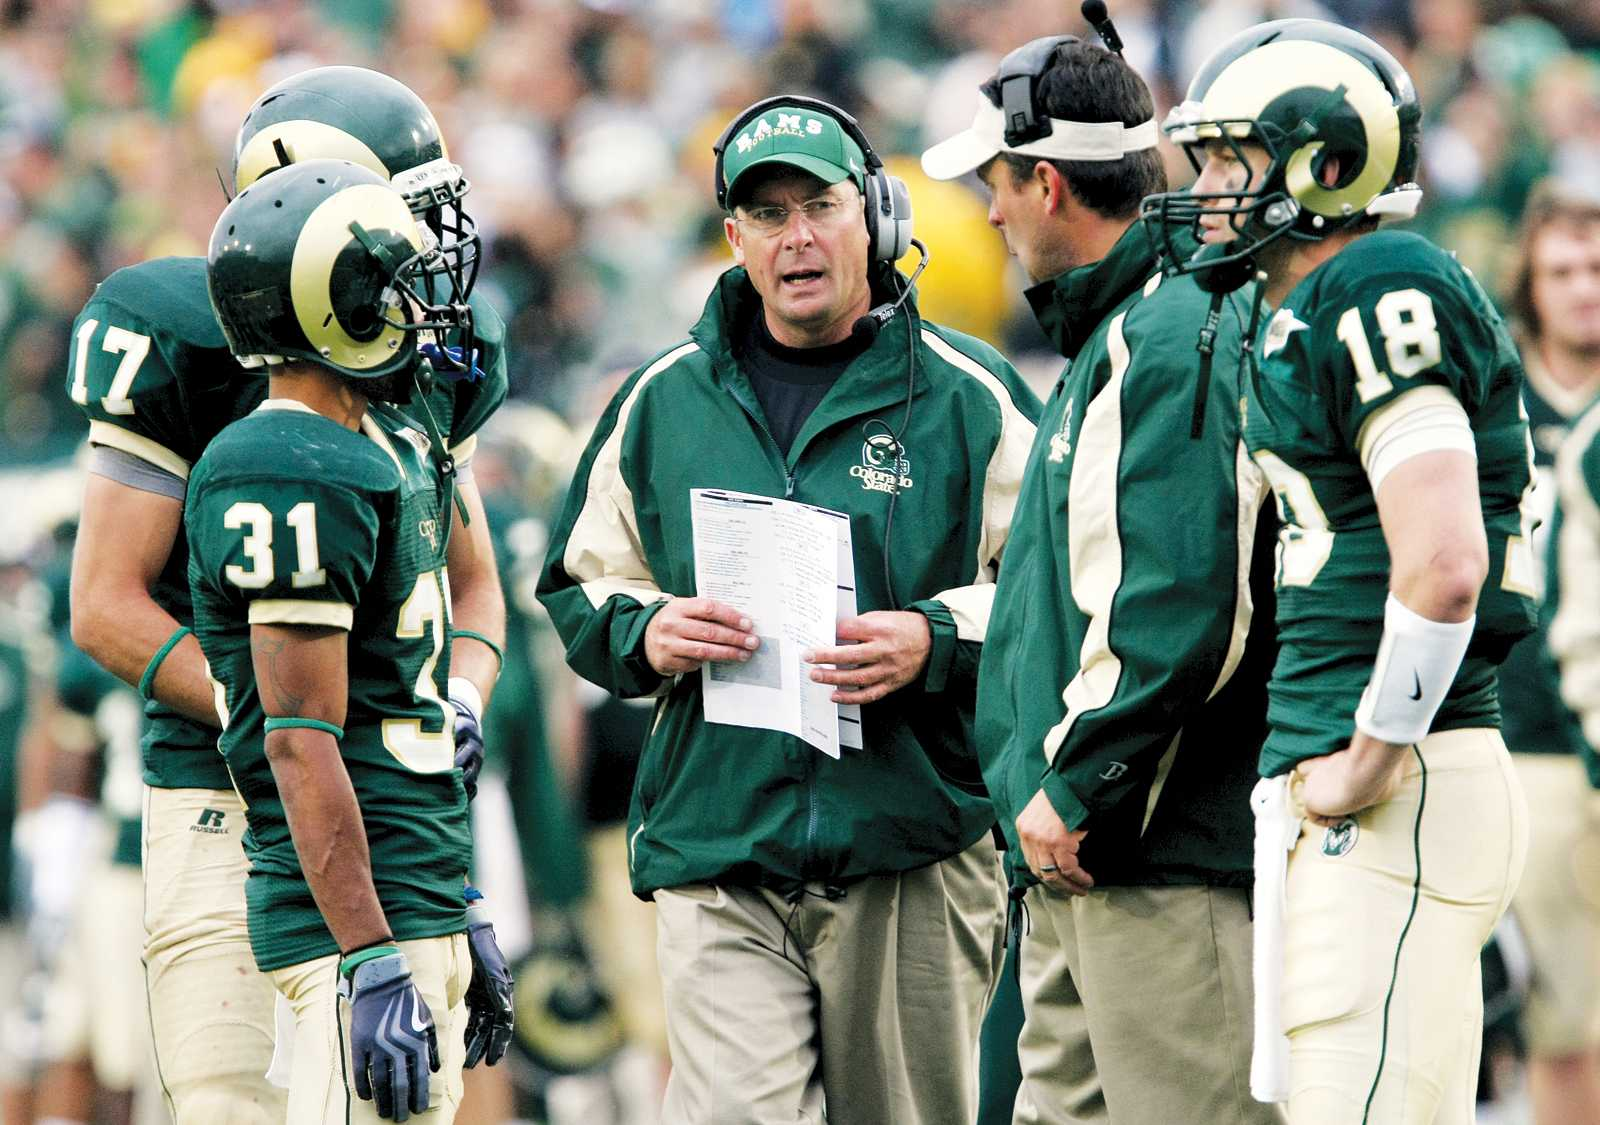 Former CSU football head coach Steve Fairchild was anncouced as the next offensive coordinator and quarterbacks coach at the University of Virginia. Fairchild has 31 years of coaching experience in both NCAA and NFL.